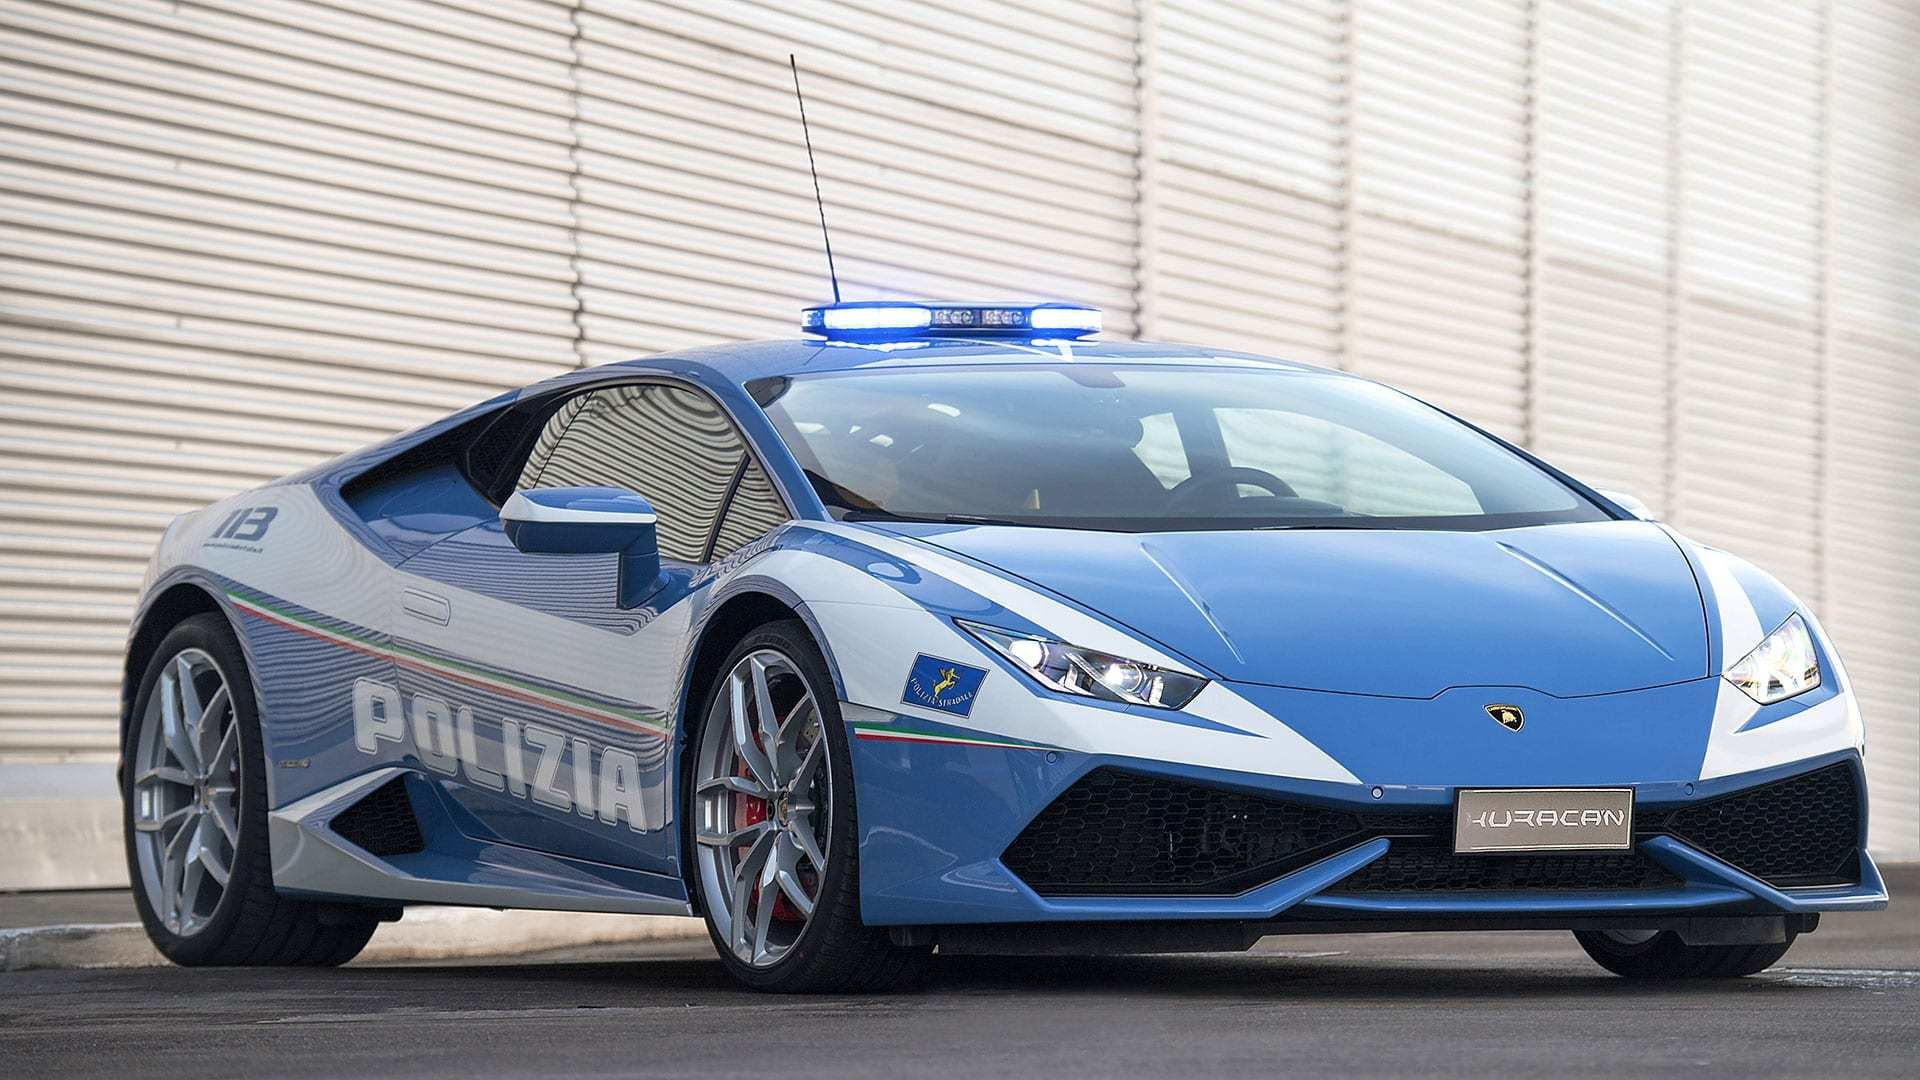 New Lamborghini Delivers A New Huracán Polizia To The Italian On This Month